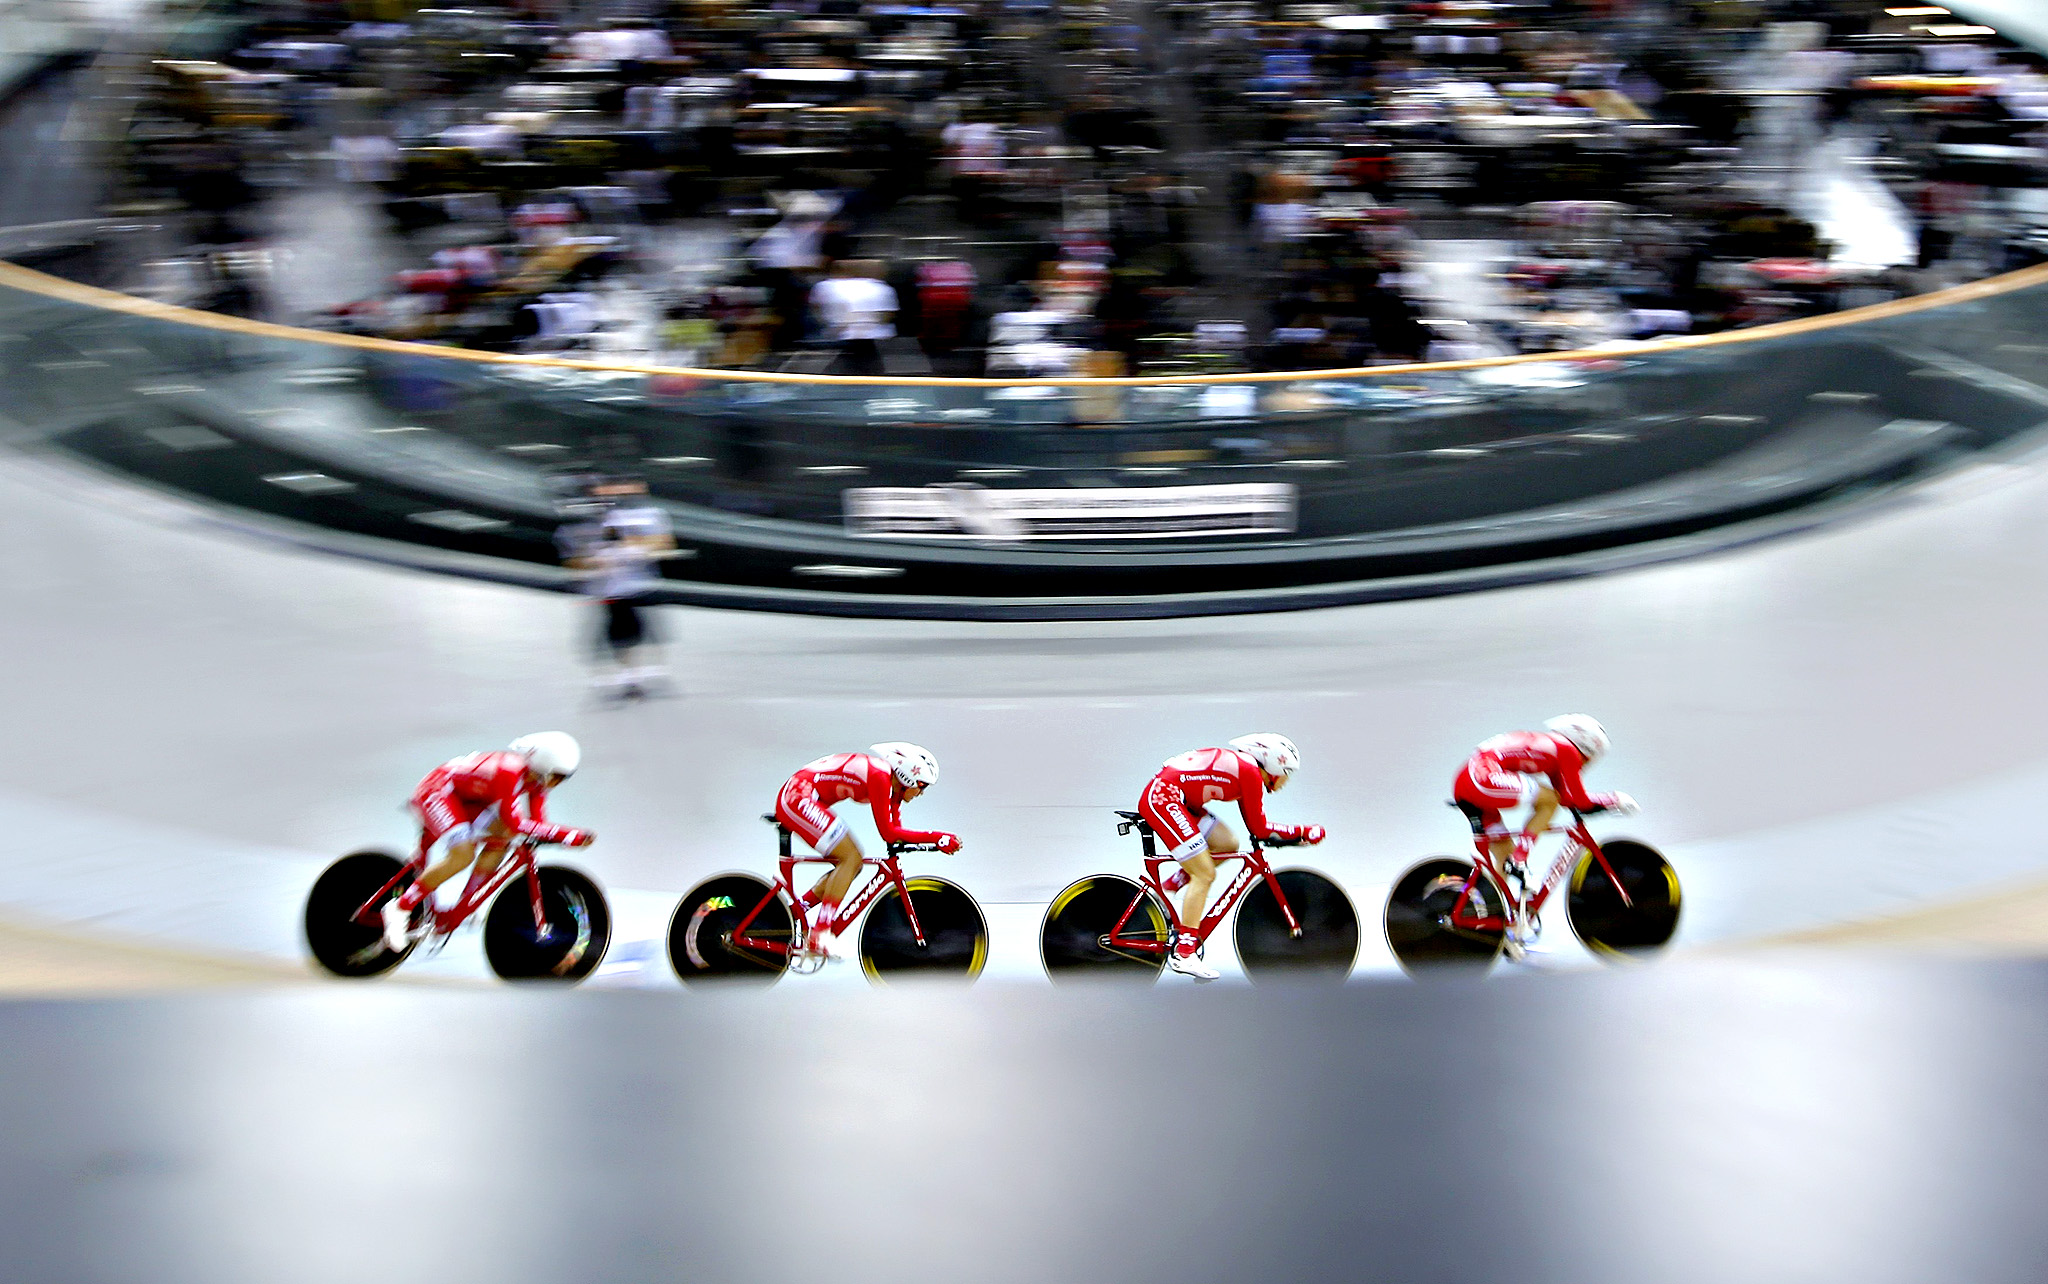 The Hong Kong team competes during the women's team pursuit qualifying race at the UCI Track Cycling World Cup in Saint-Quentin-en-Yvelines, near Paris...REFILE - CORRECTING HEADLINE  The Hong Kong team, including Pang Yao, Yang Qianyu, Leung Bo Yee and Meng Zhao Juan, competes during the women's team pursuit qualifying race at the UCI Track Cycling World Cup in Saint-Quentin-en-Yvelines, near Paris, February 18, 2015.